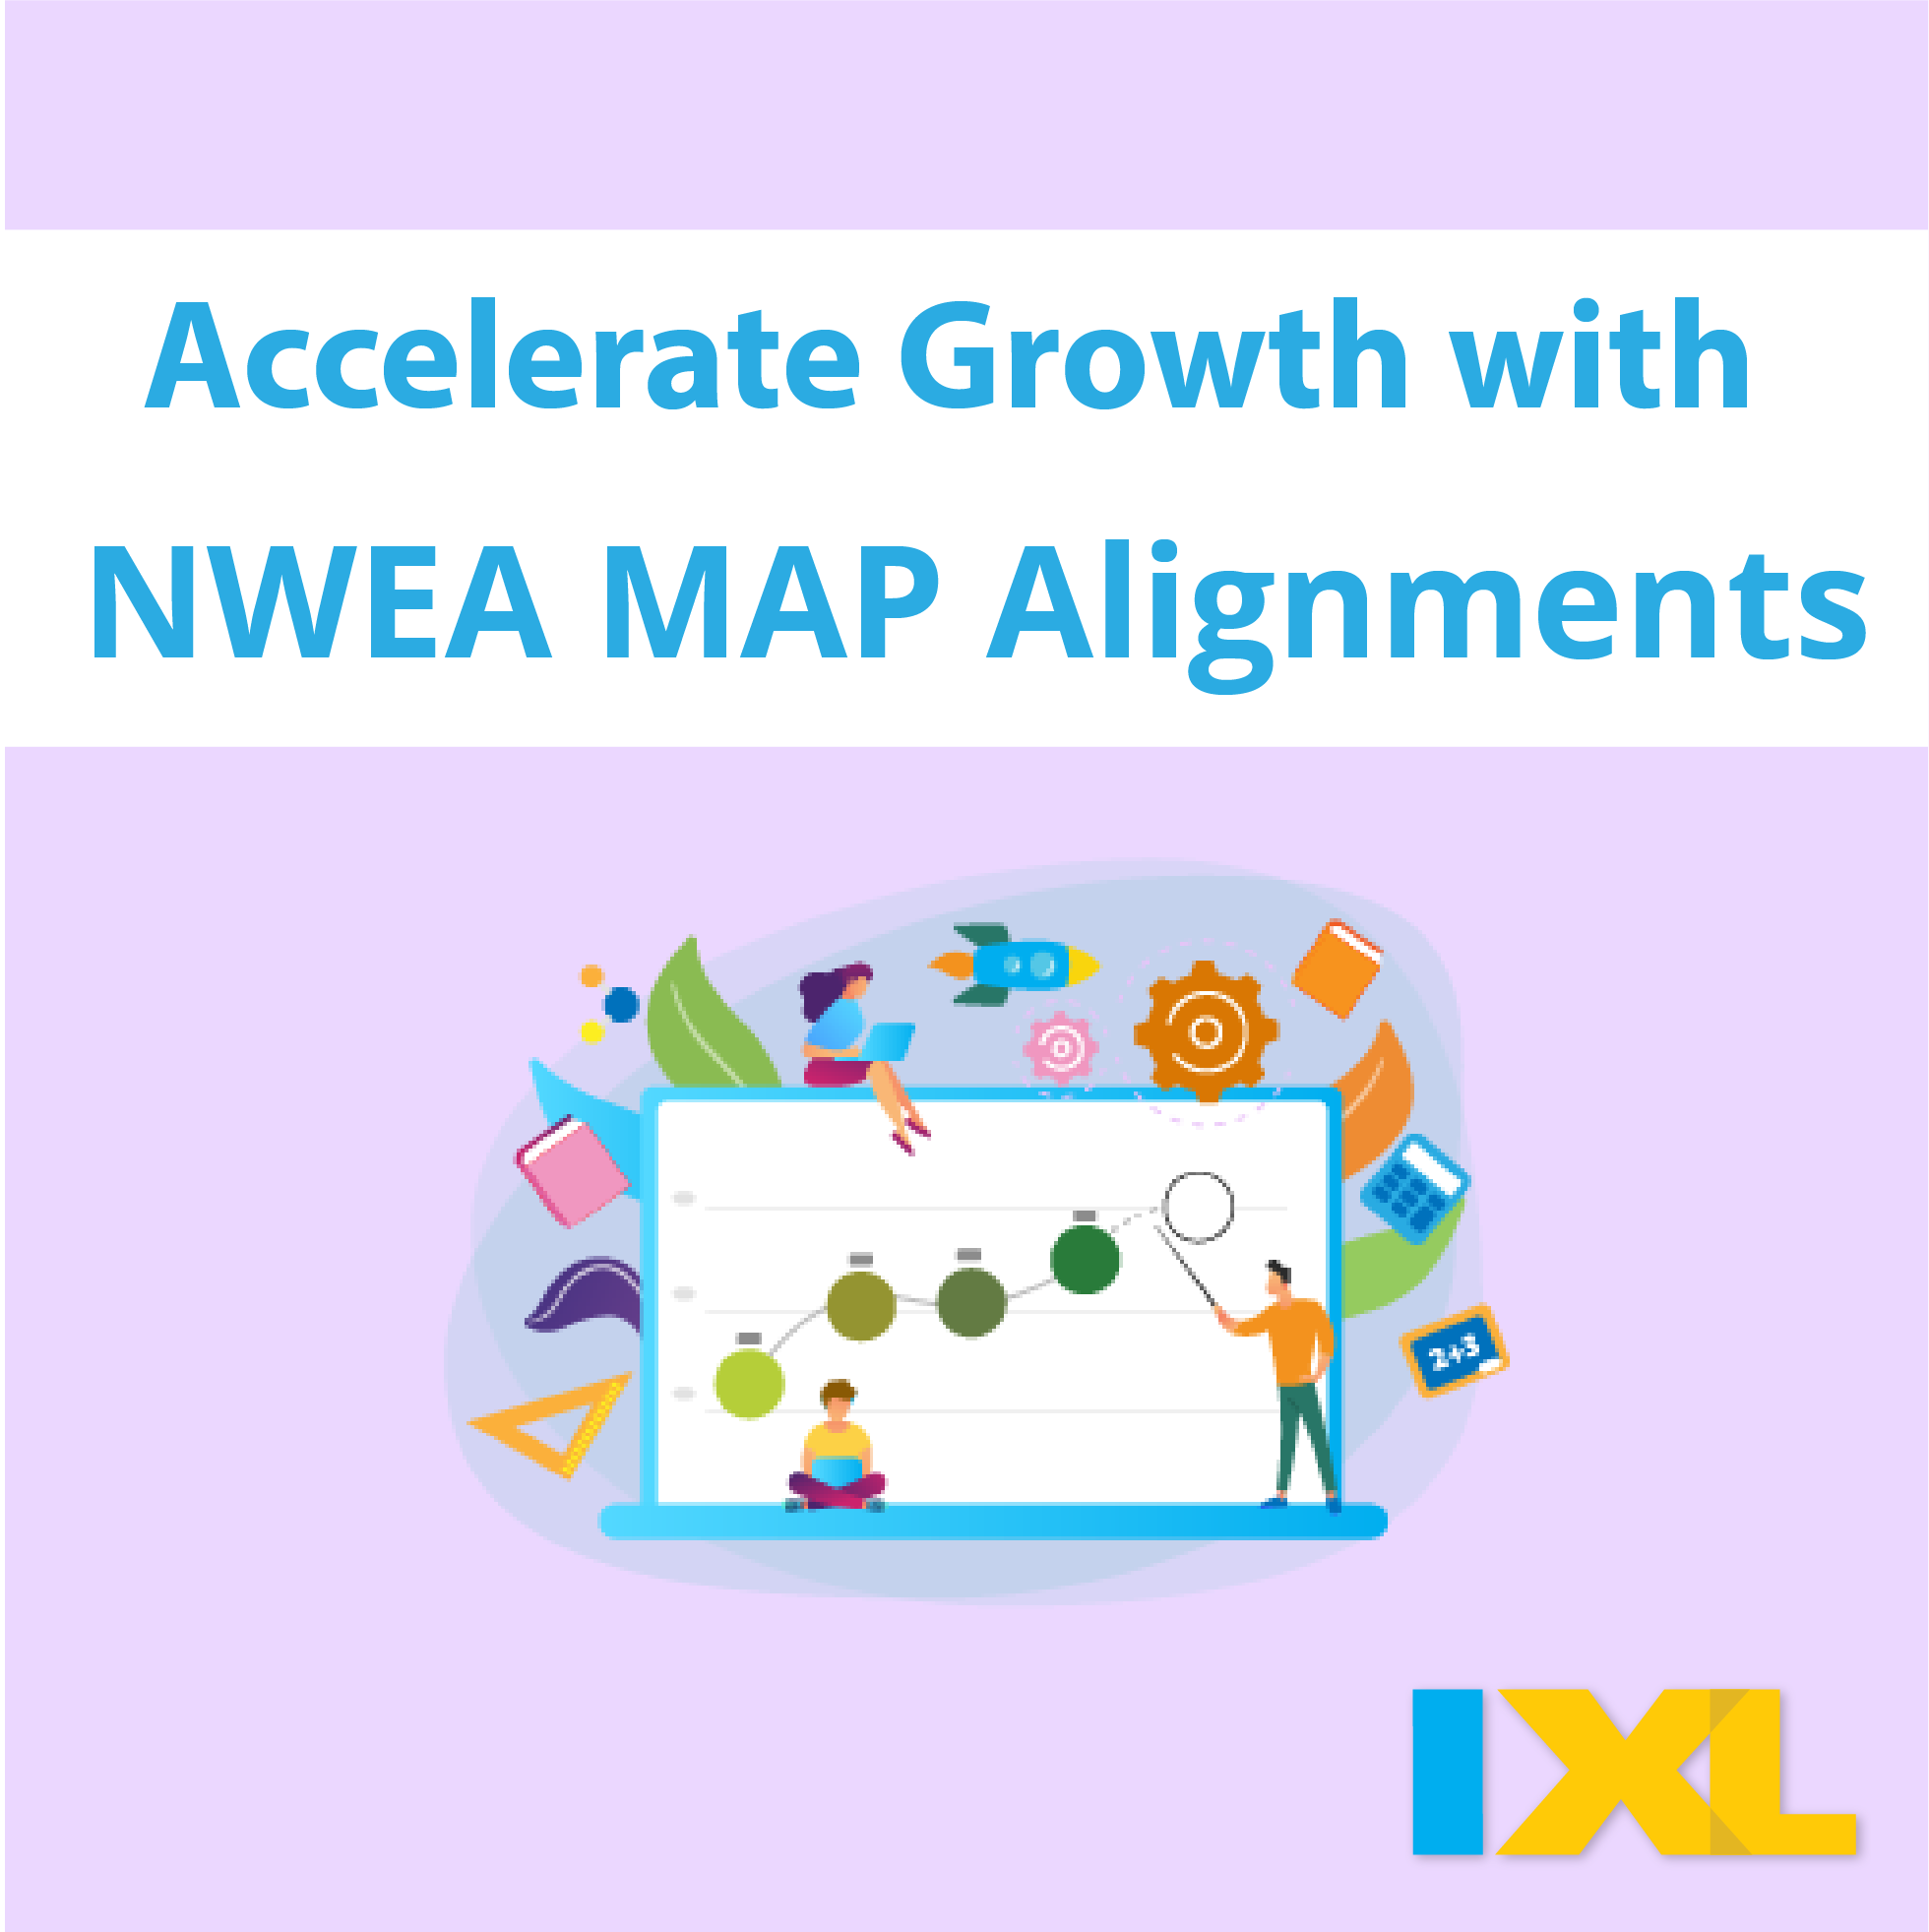 Announcing IXL's NWEA MAP alignments!